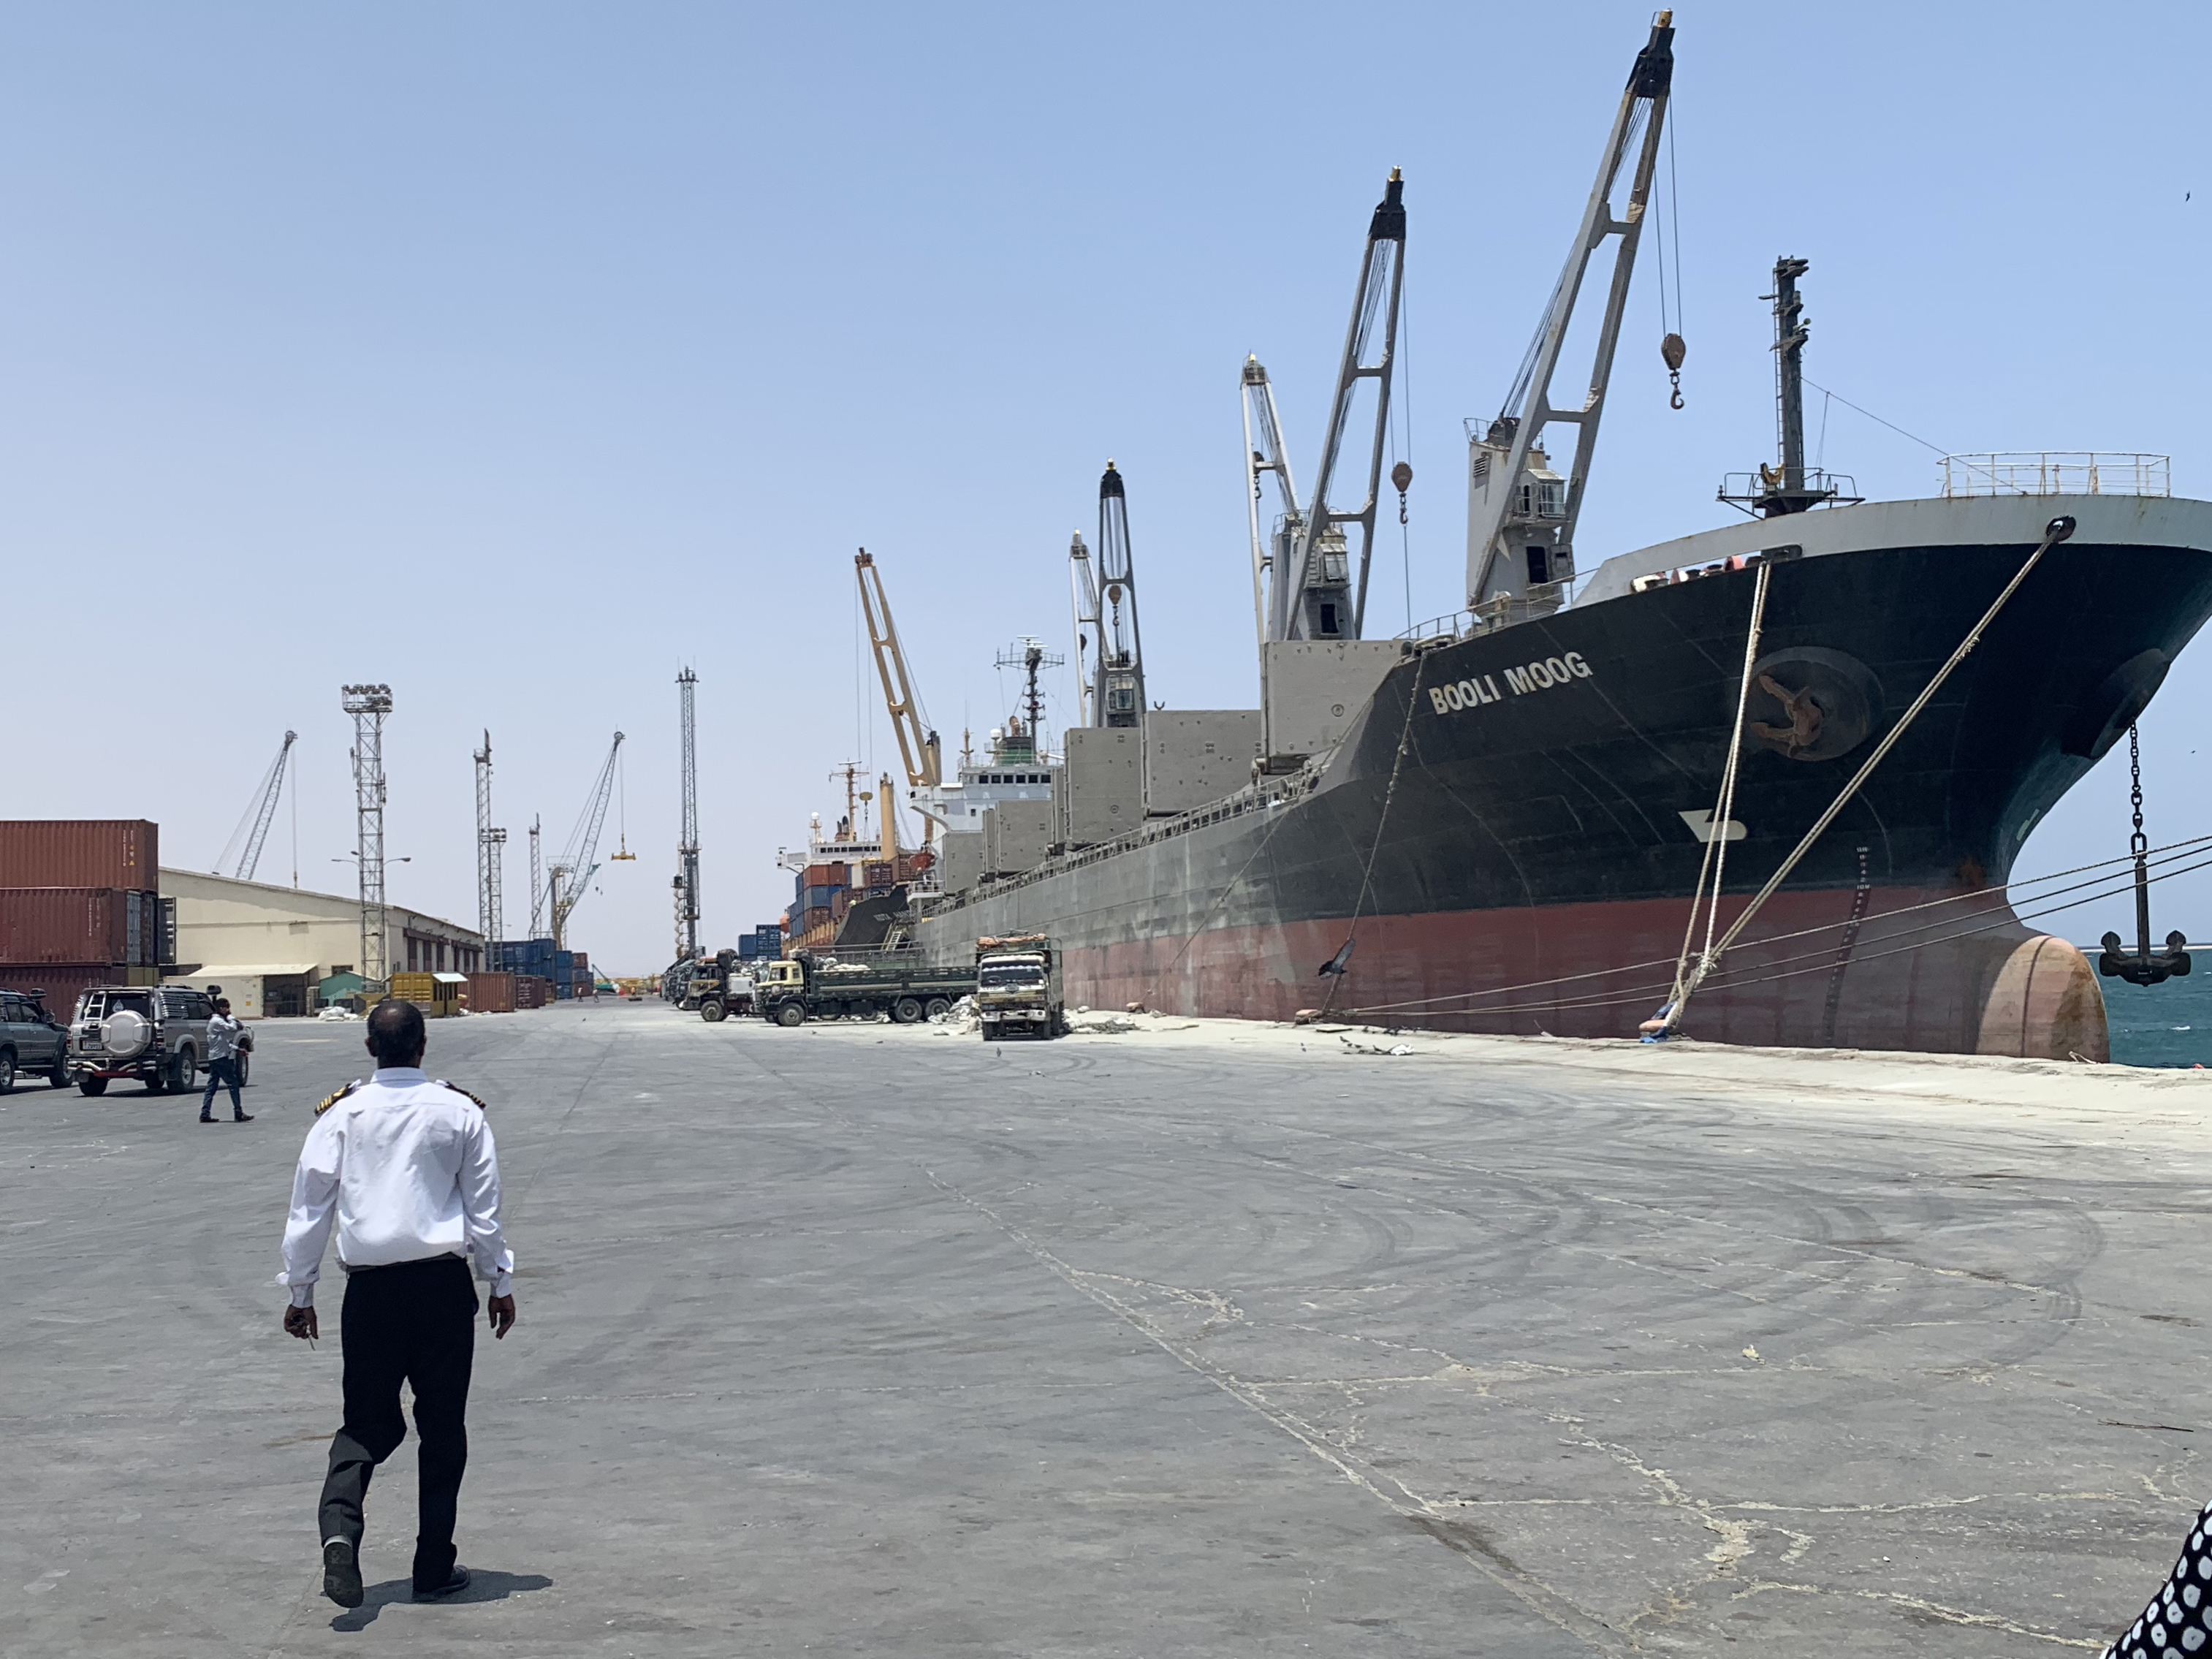 Captain Hersi Jama Hassan, standing at the end of the dock, points out where the UAE has begun extending the port to dramatically increase its capacity. Photo: Ray Hartley